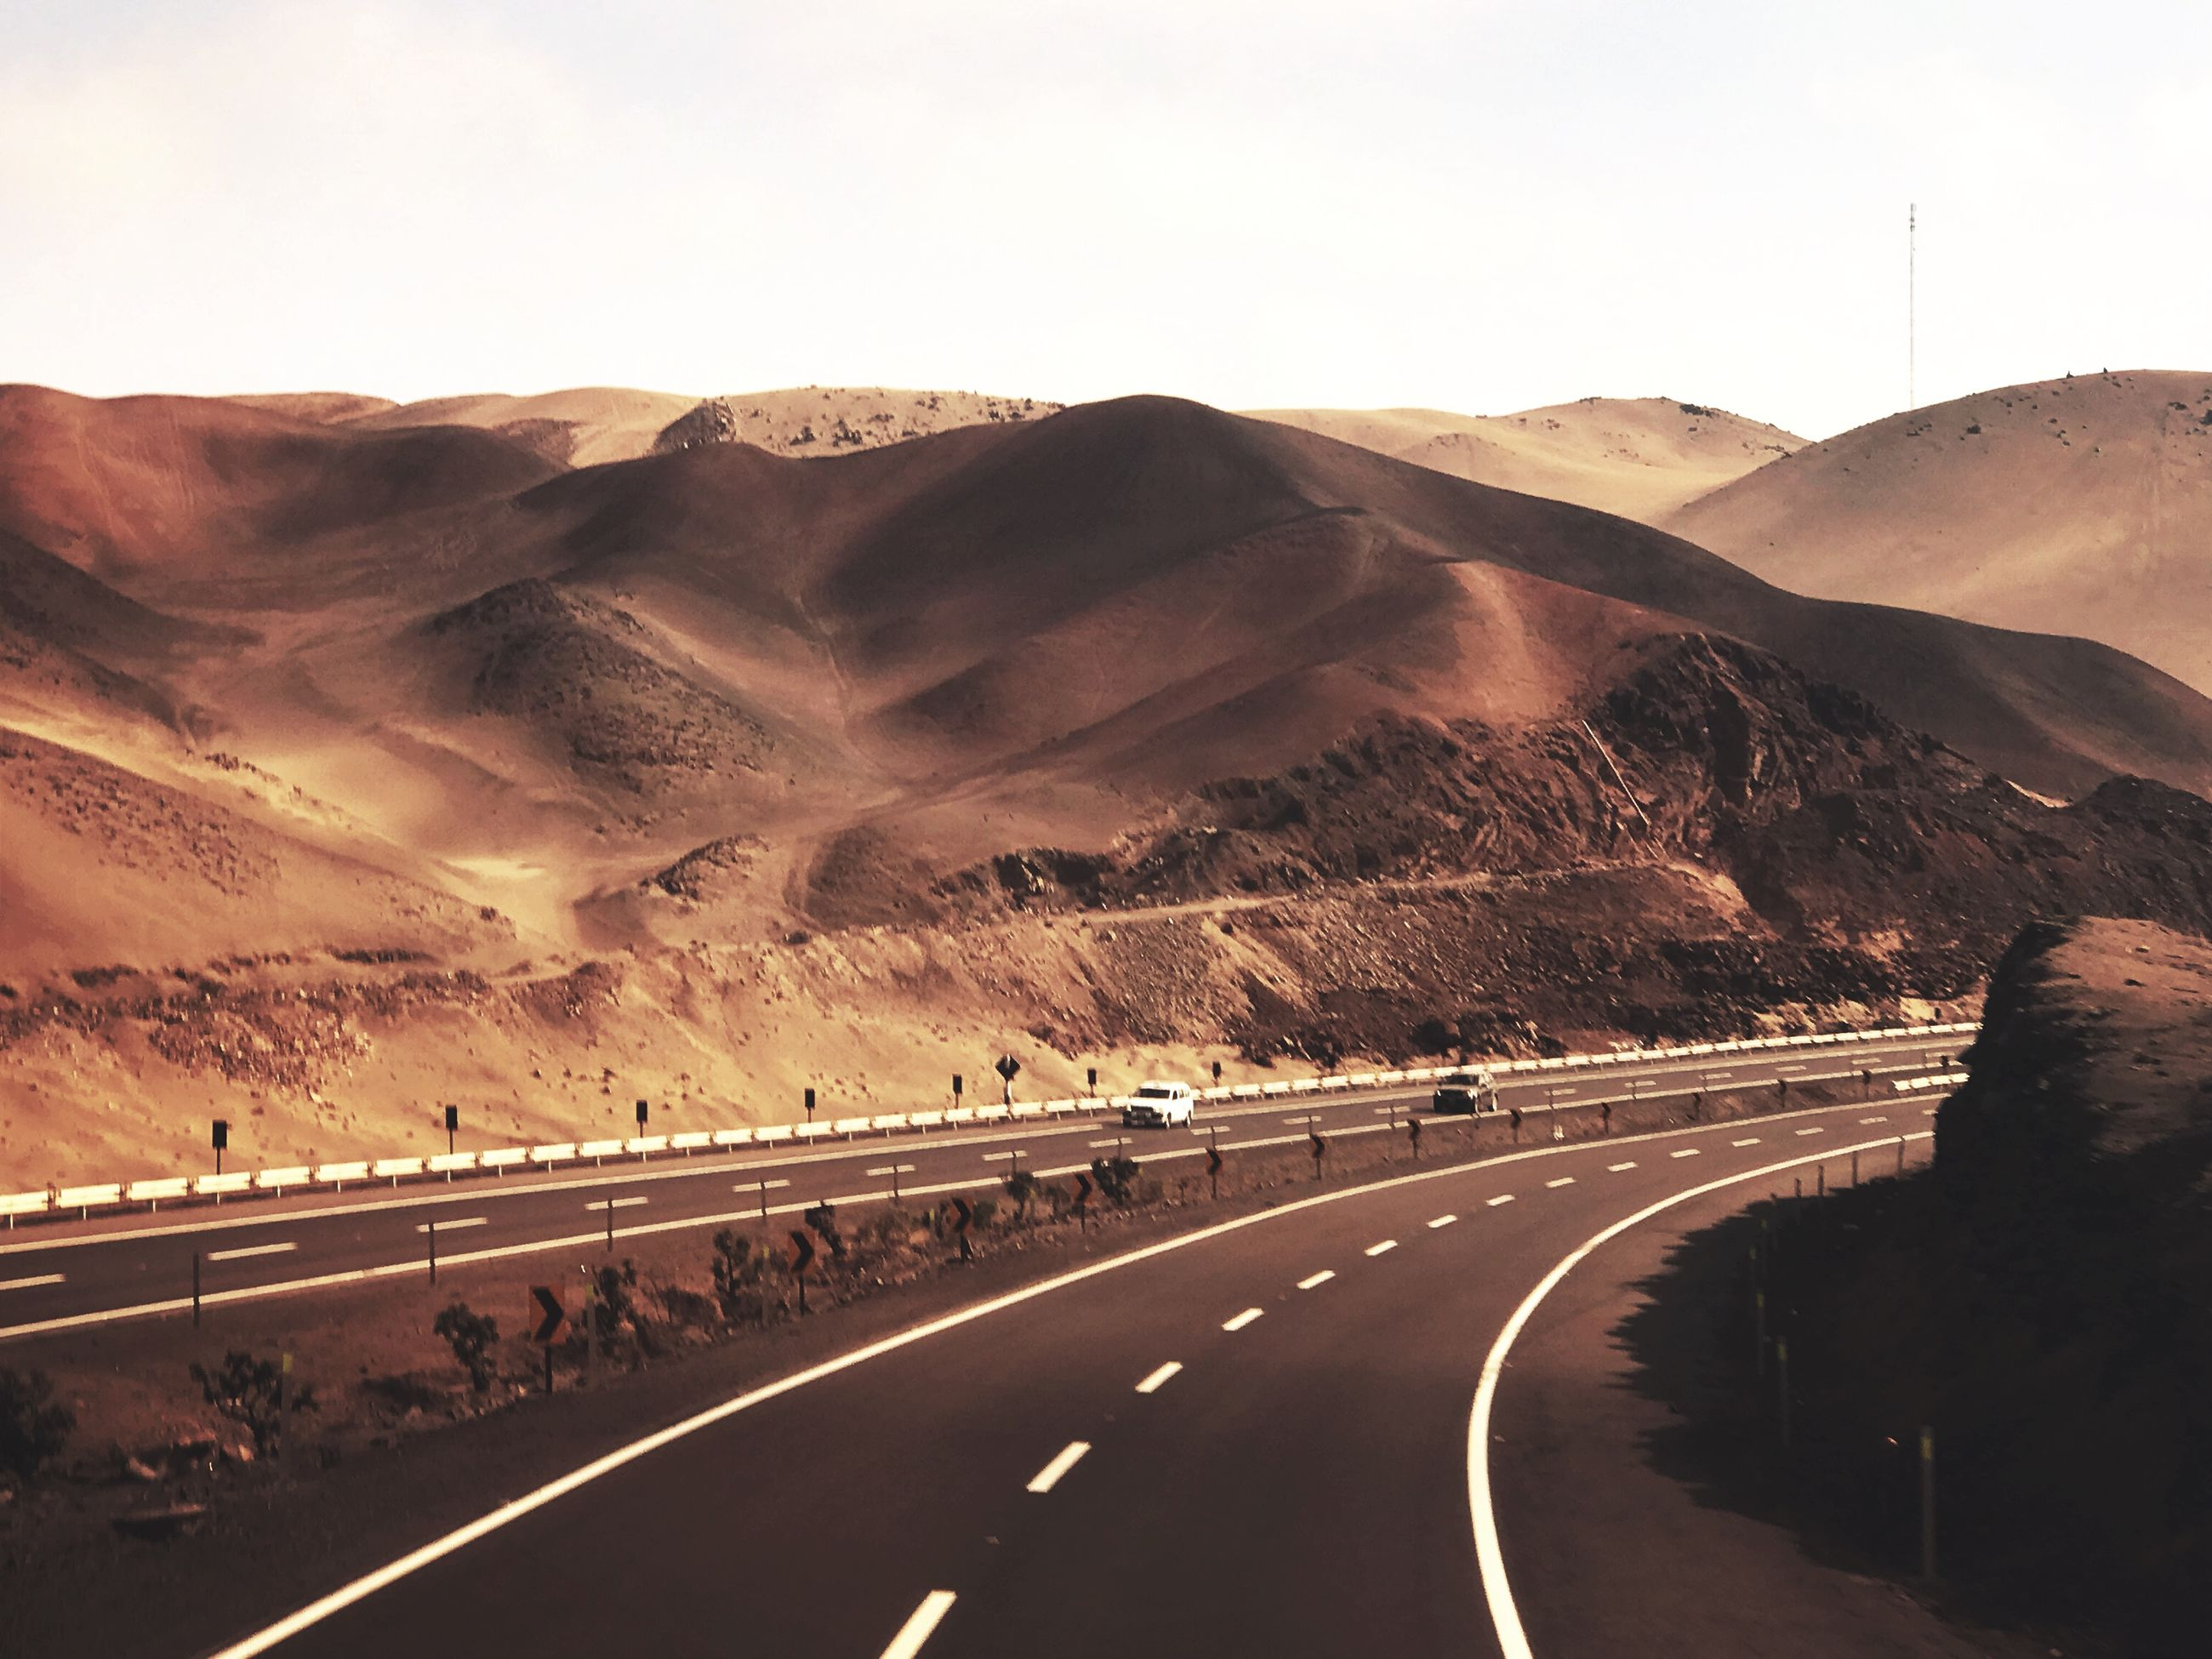 road, transportation, mountain, sky, direction, the way forward, road marking, marking, nature, symbol, scenics - nature, no people, desert, sign, car, mountain range, environment, landscape, motor vehicle, beauty in nature, outdoors, arid climate, climate, dividing line, formation